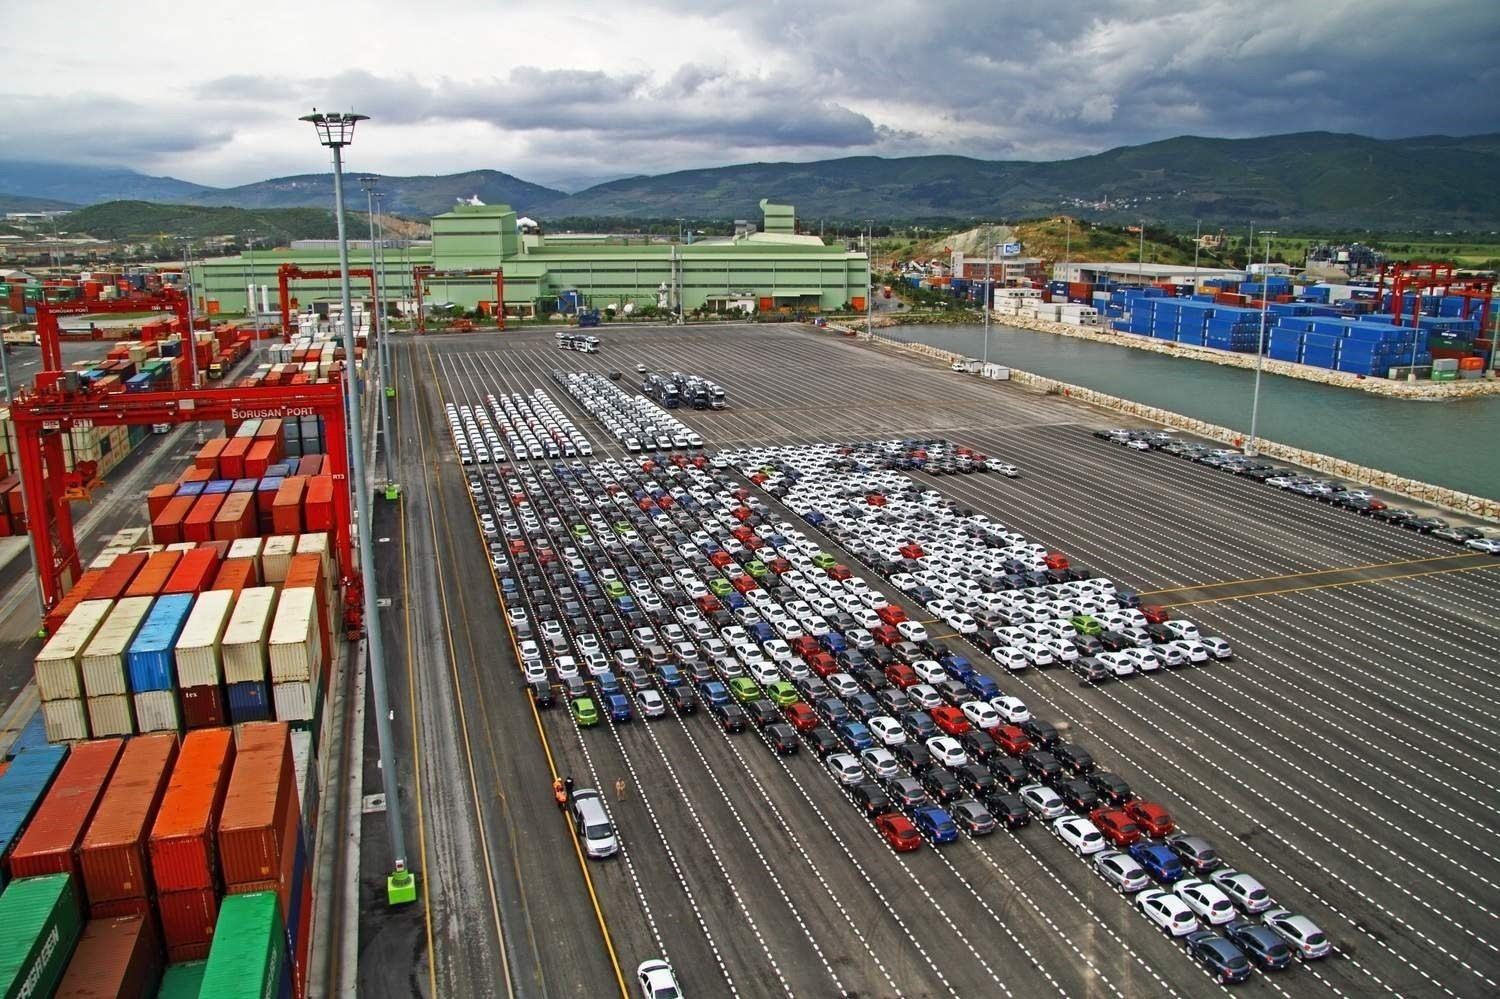 The automotive industryu2019s exports hit $31.6 billion in 2018, up 11 percent year-on-year.